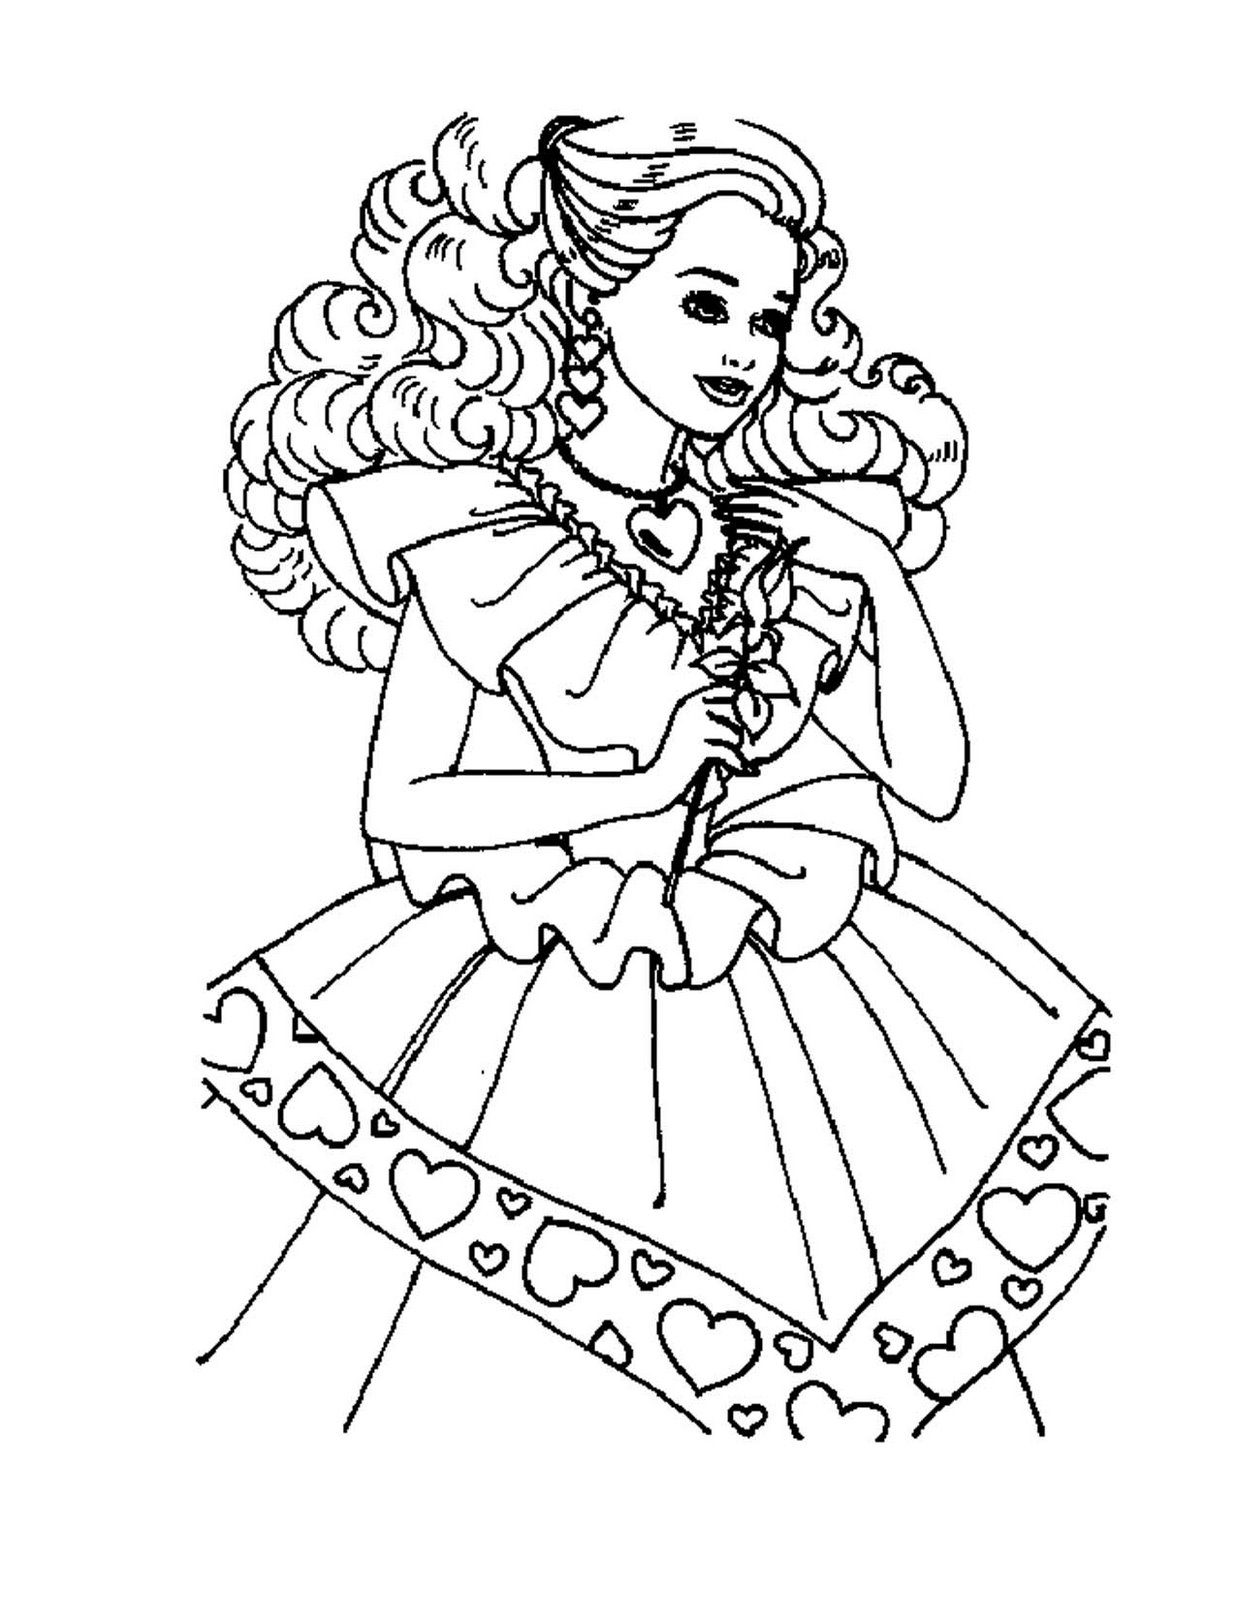 Barbie printable coloring pages for Barbie free printable coloring pages